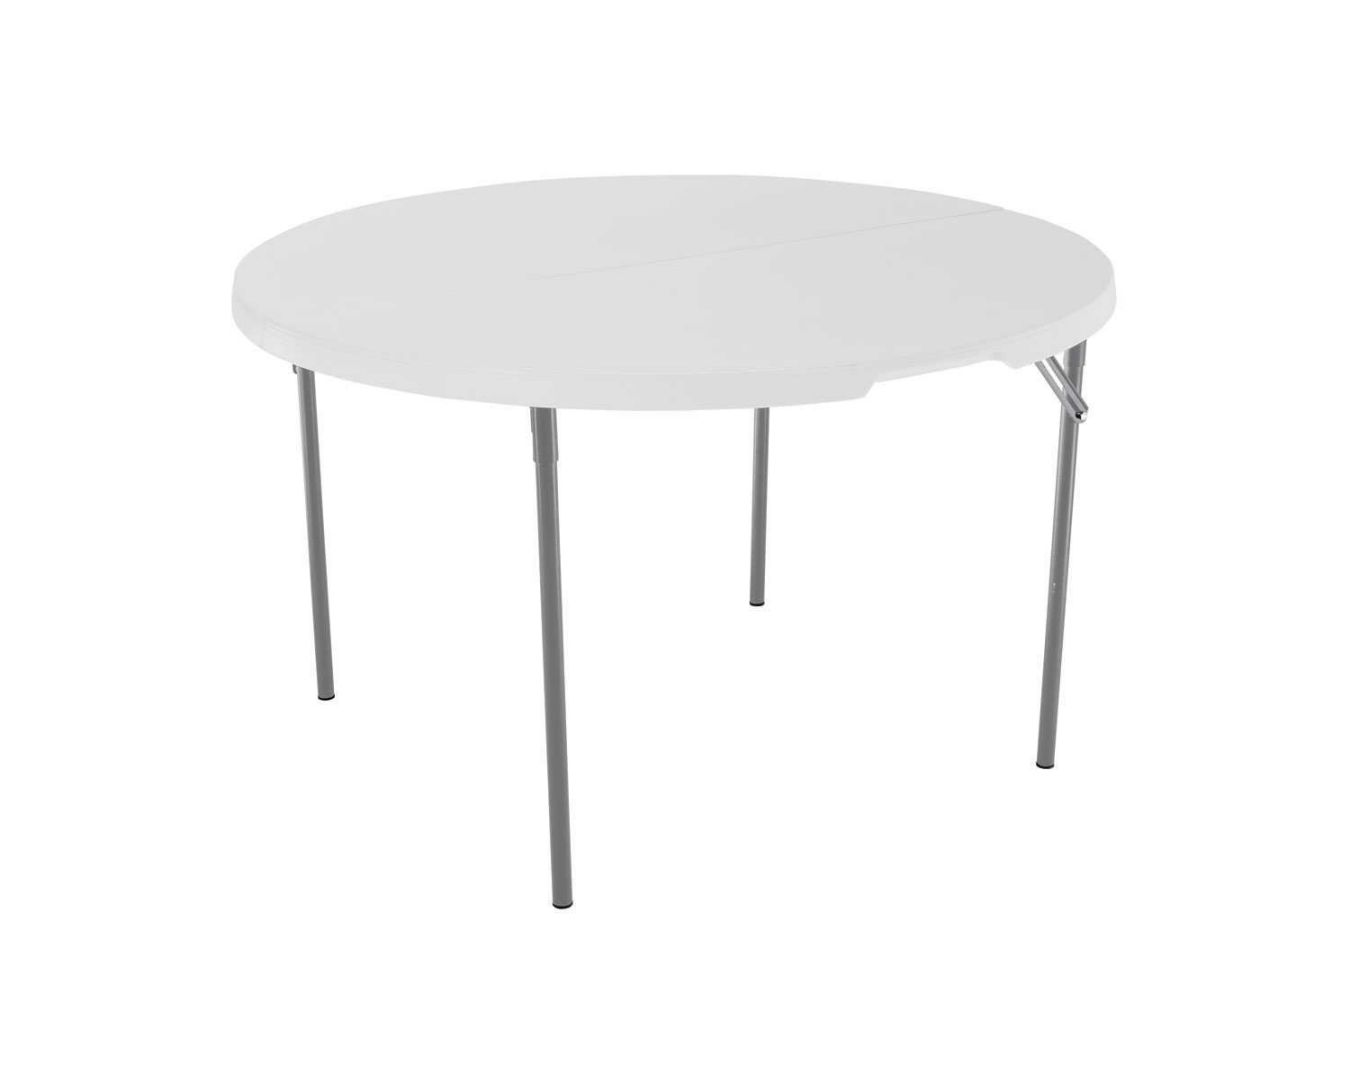 Lifetime-280064-Commercial-Fold-In-Half-Round-Table-4-Feet-White-Granite